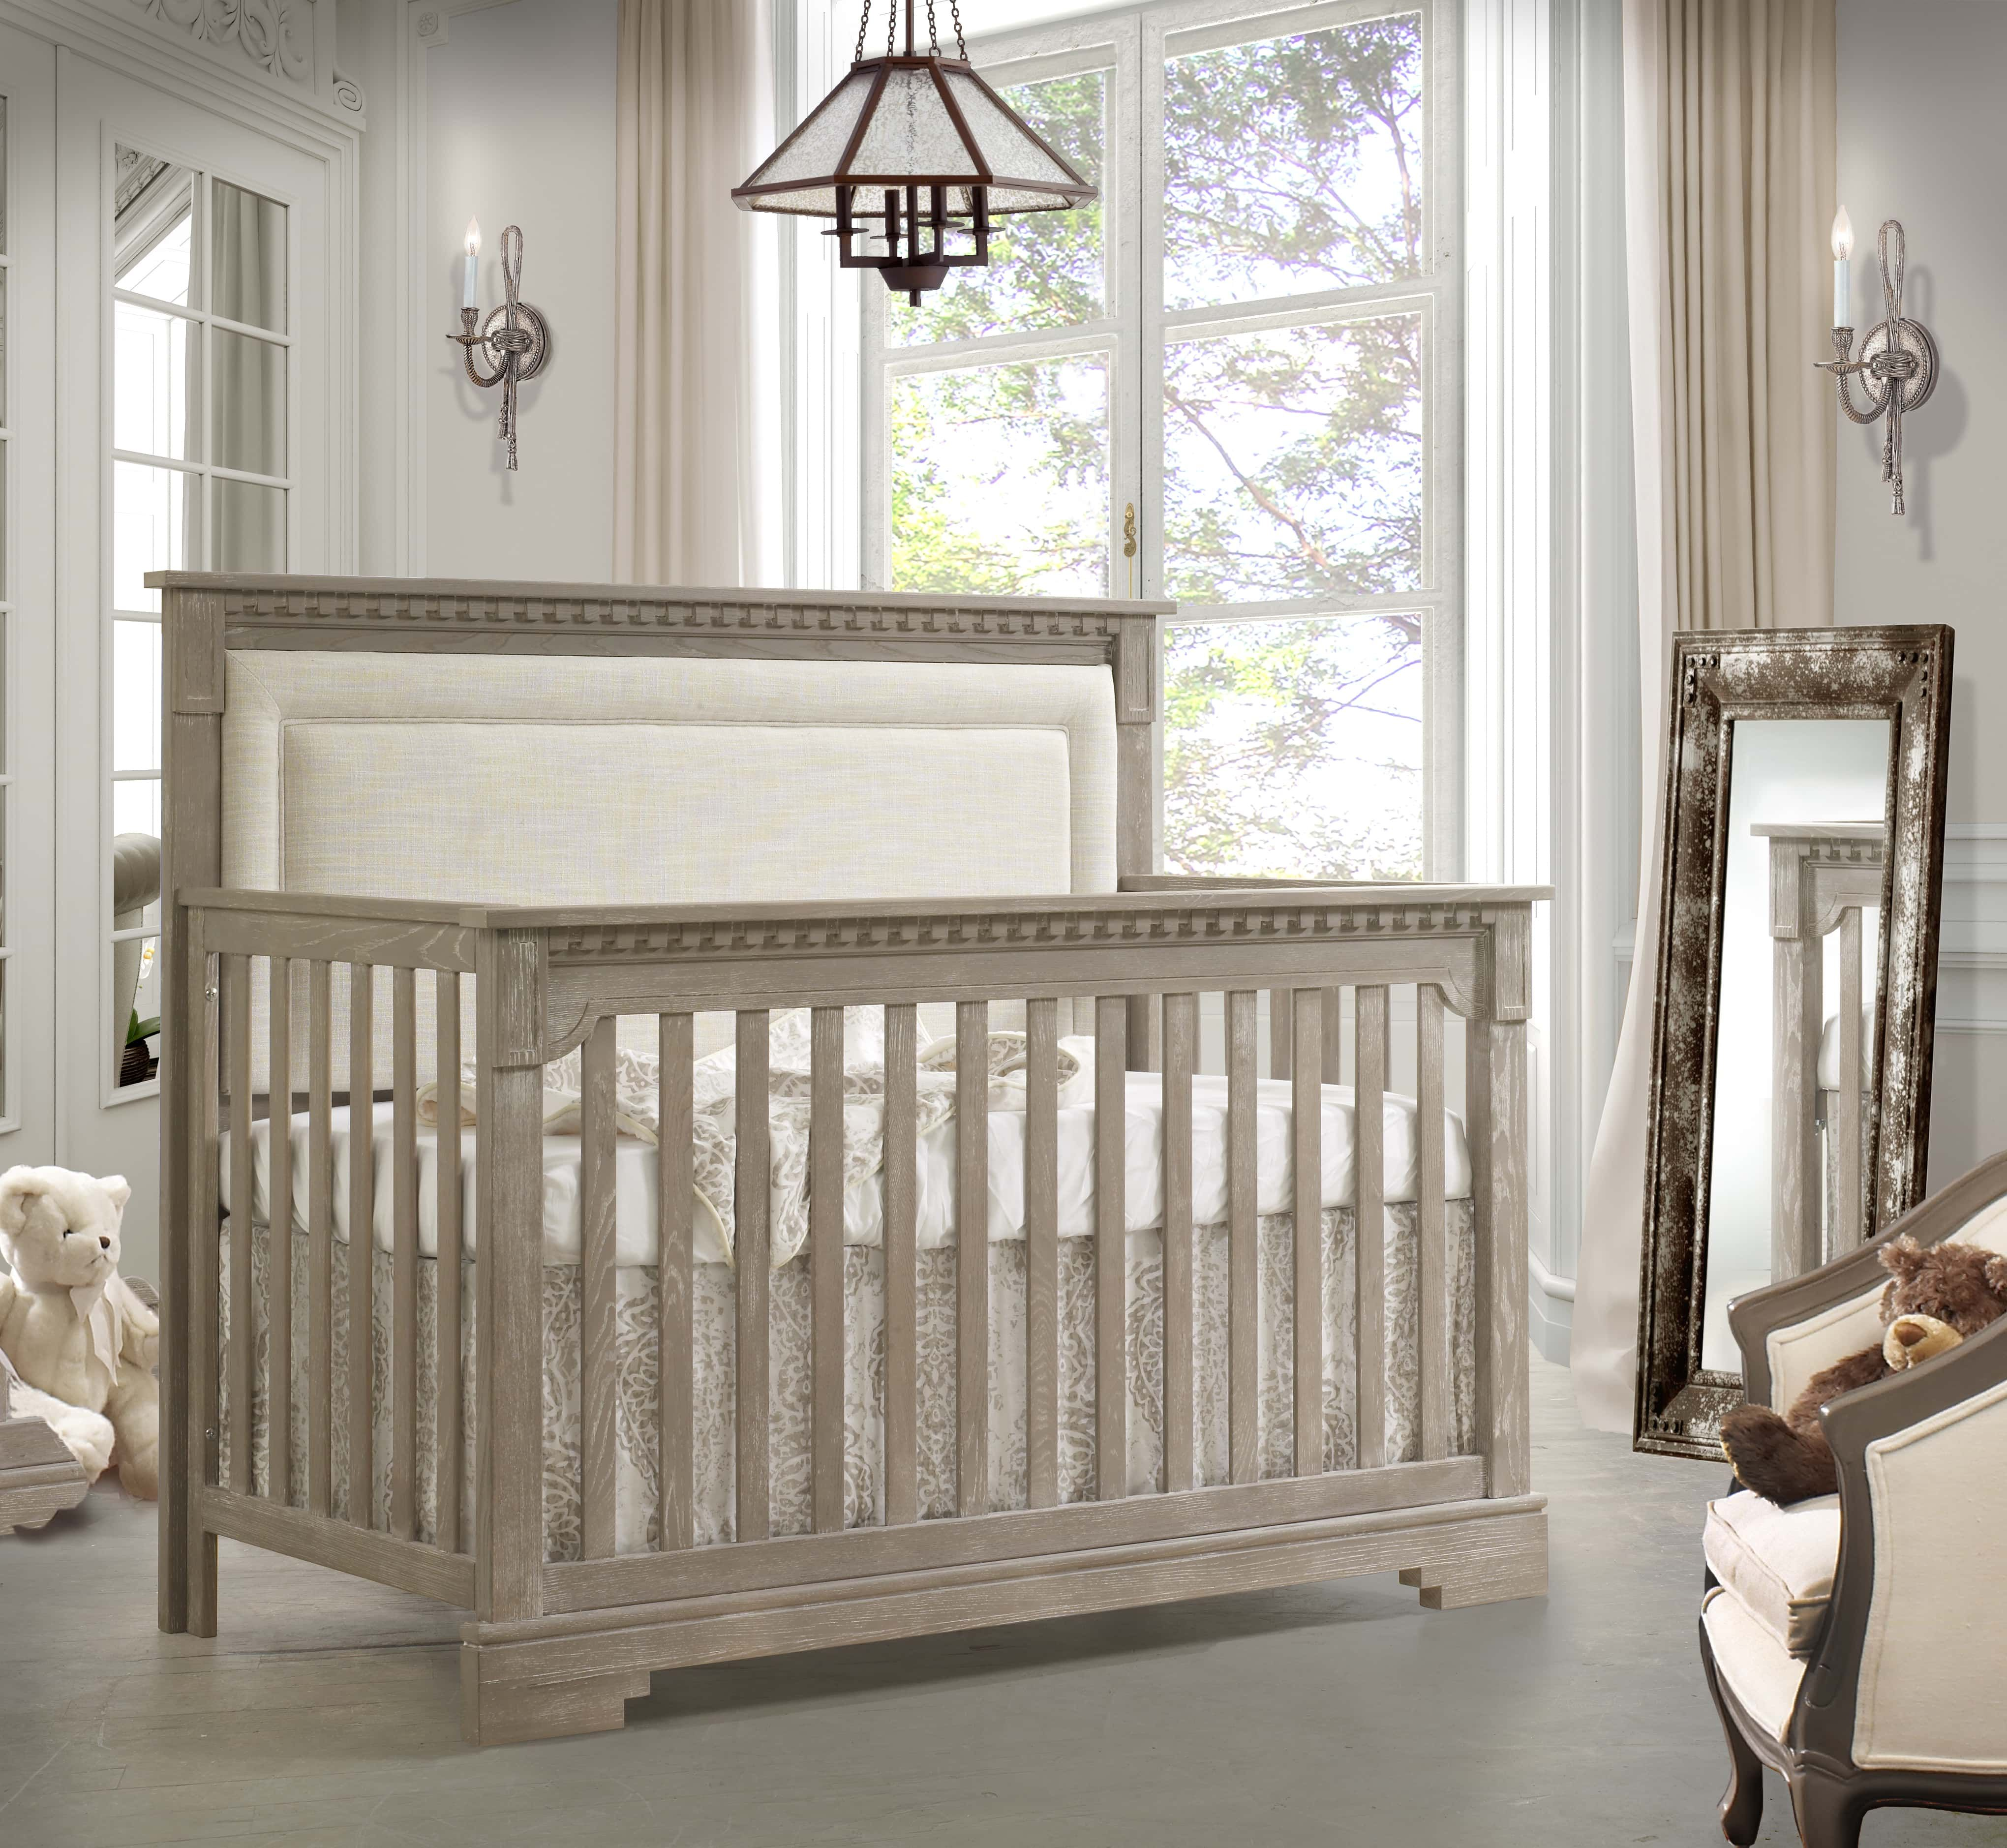 Inspired By Mediterranean Architecture And Epic Poems Our Oak Ithaca Collection Creates A Picturesq Luxury Baby Crib Bumperless Crib Bedding Baby Bedding Sets